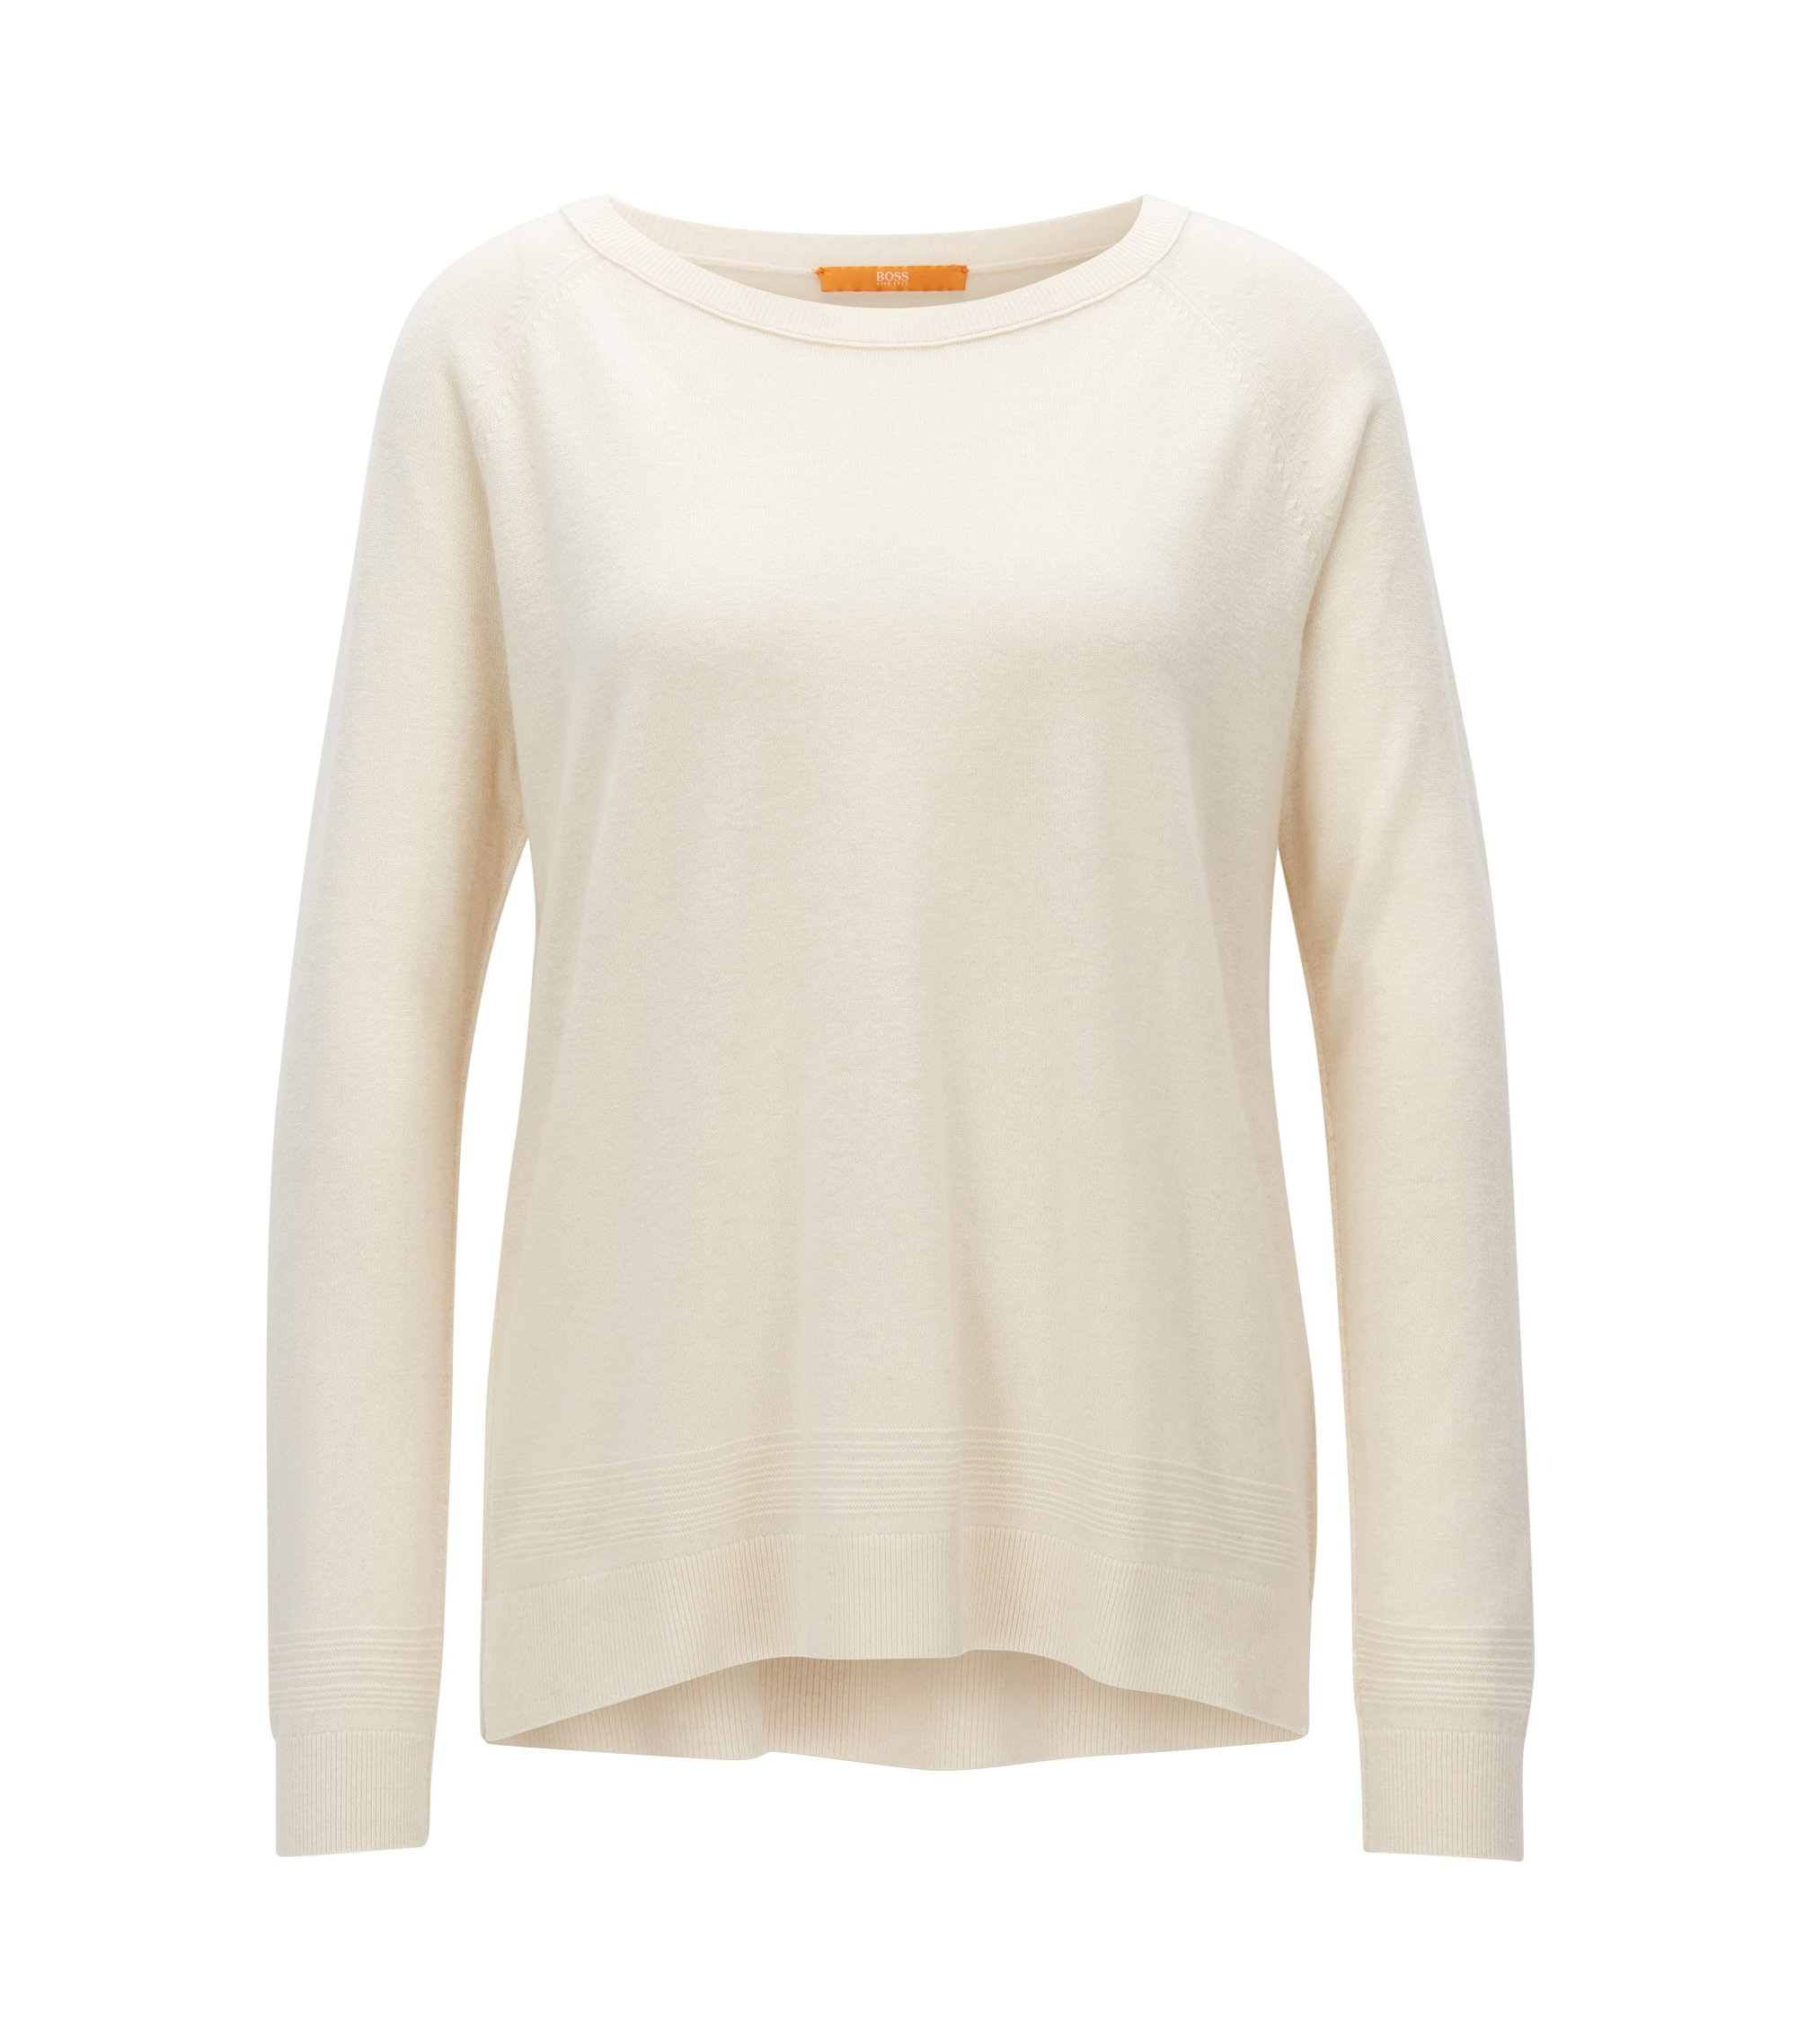 Raglan-sleeved sweater in a cashmere-wool blend, Natural